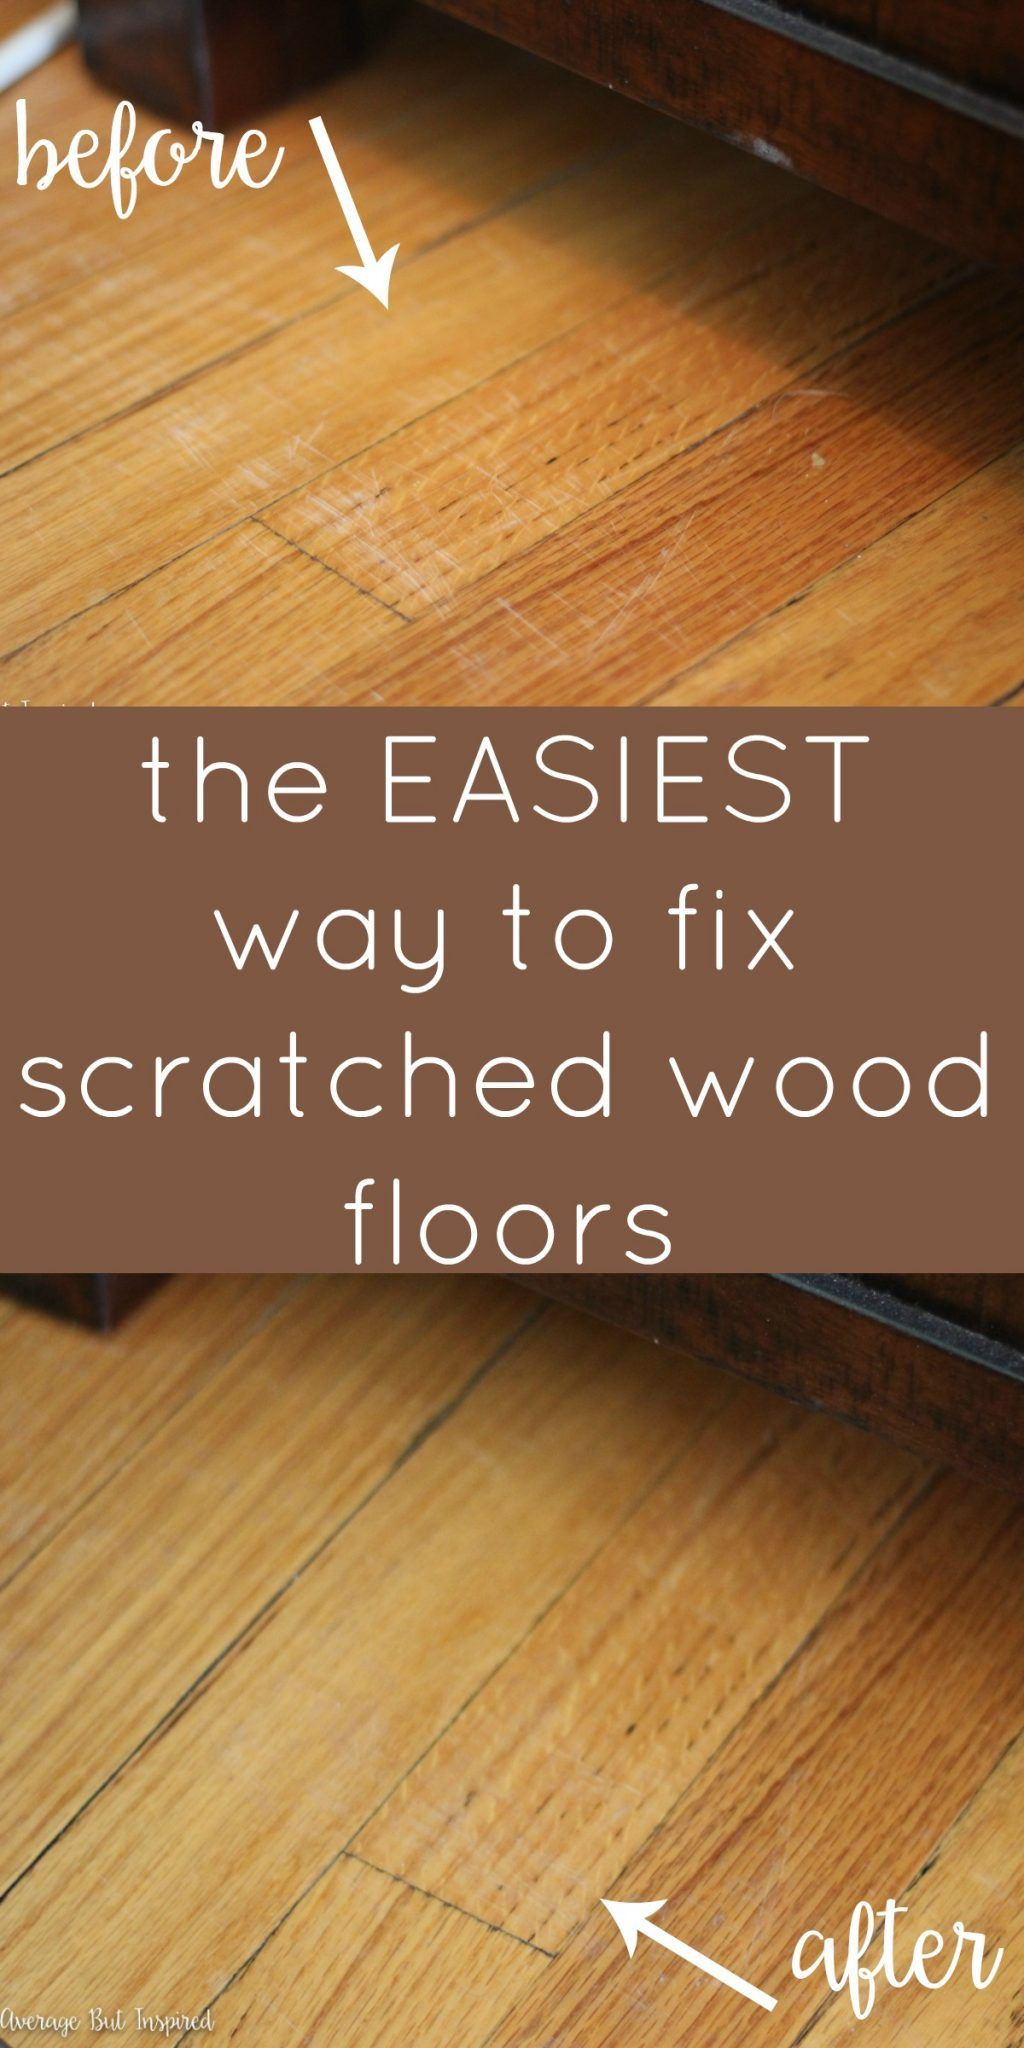 Hardwood Flooring and Installation Of Prepossessing Bathroom Wall Coverings Vinyl or Best Flooring for In Foxy How to Repair Scratches On Wood Furniture In How to Fix Scratched Hardwood Floors In